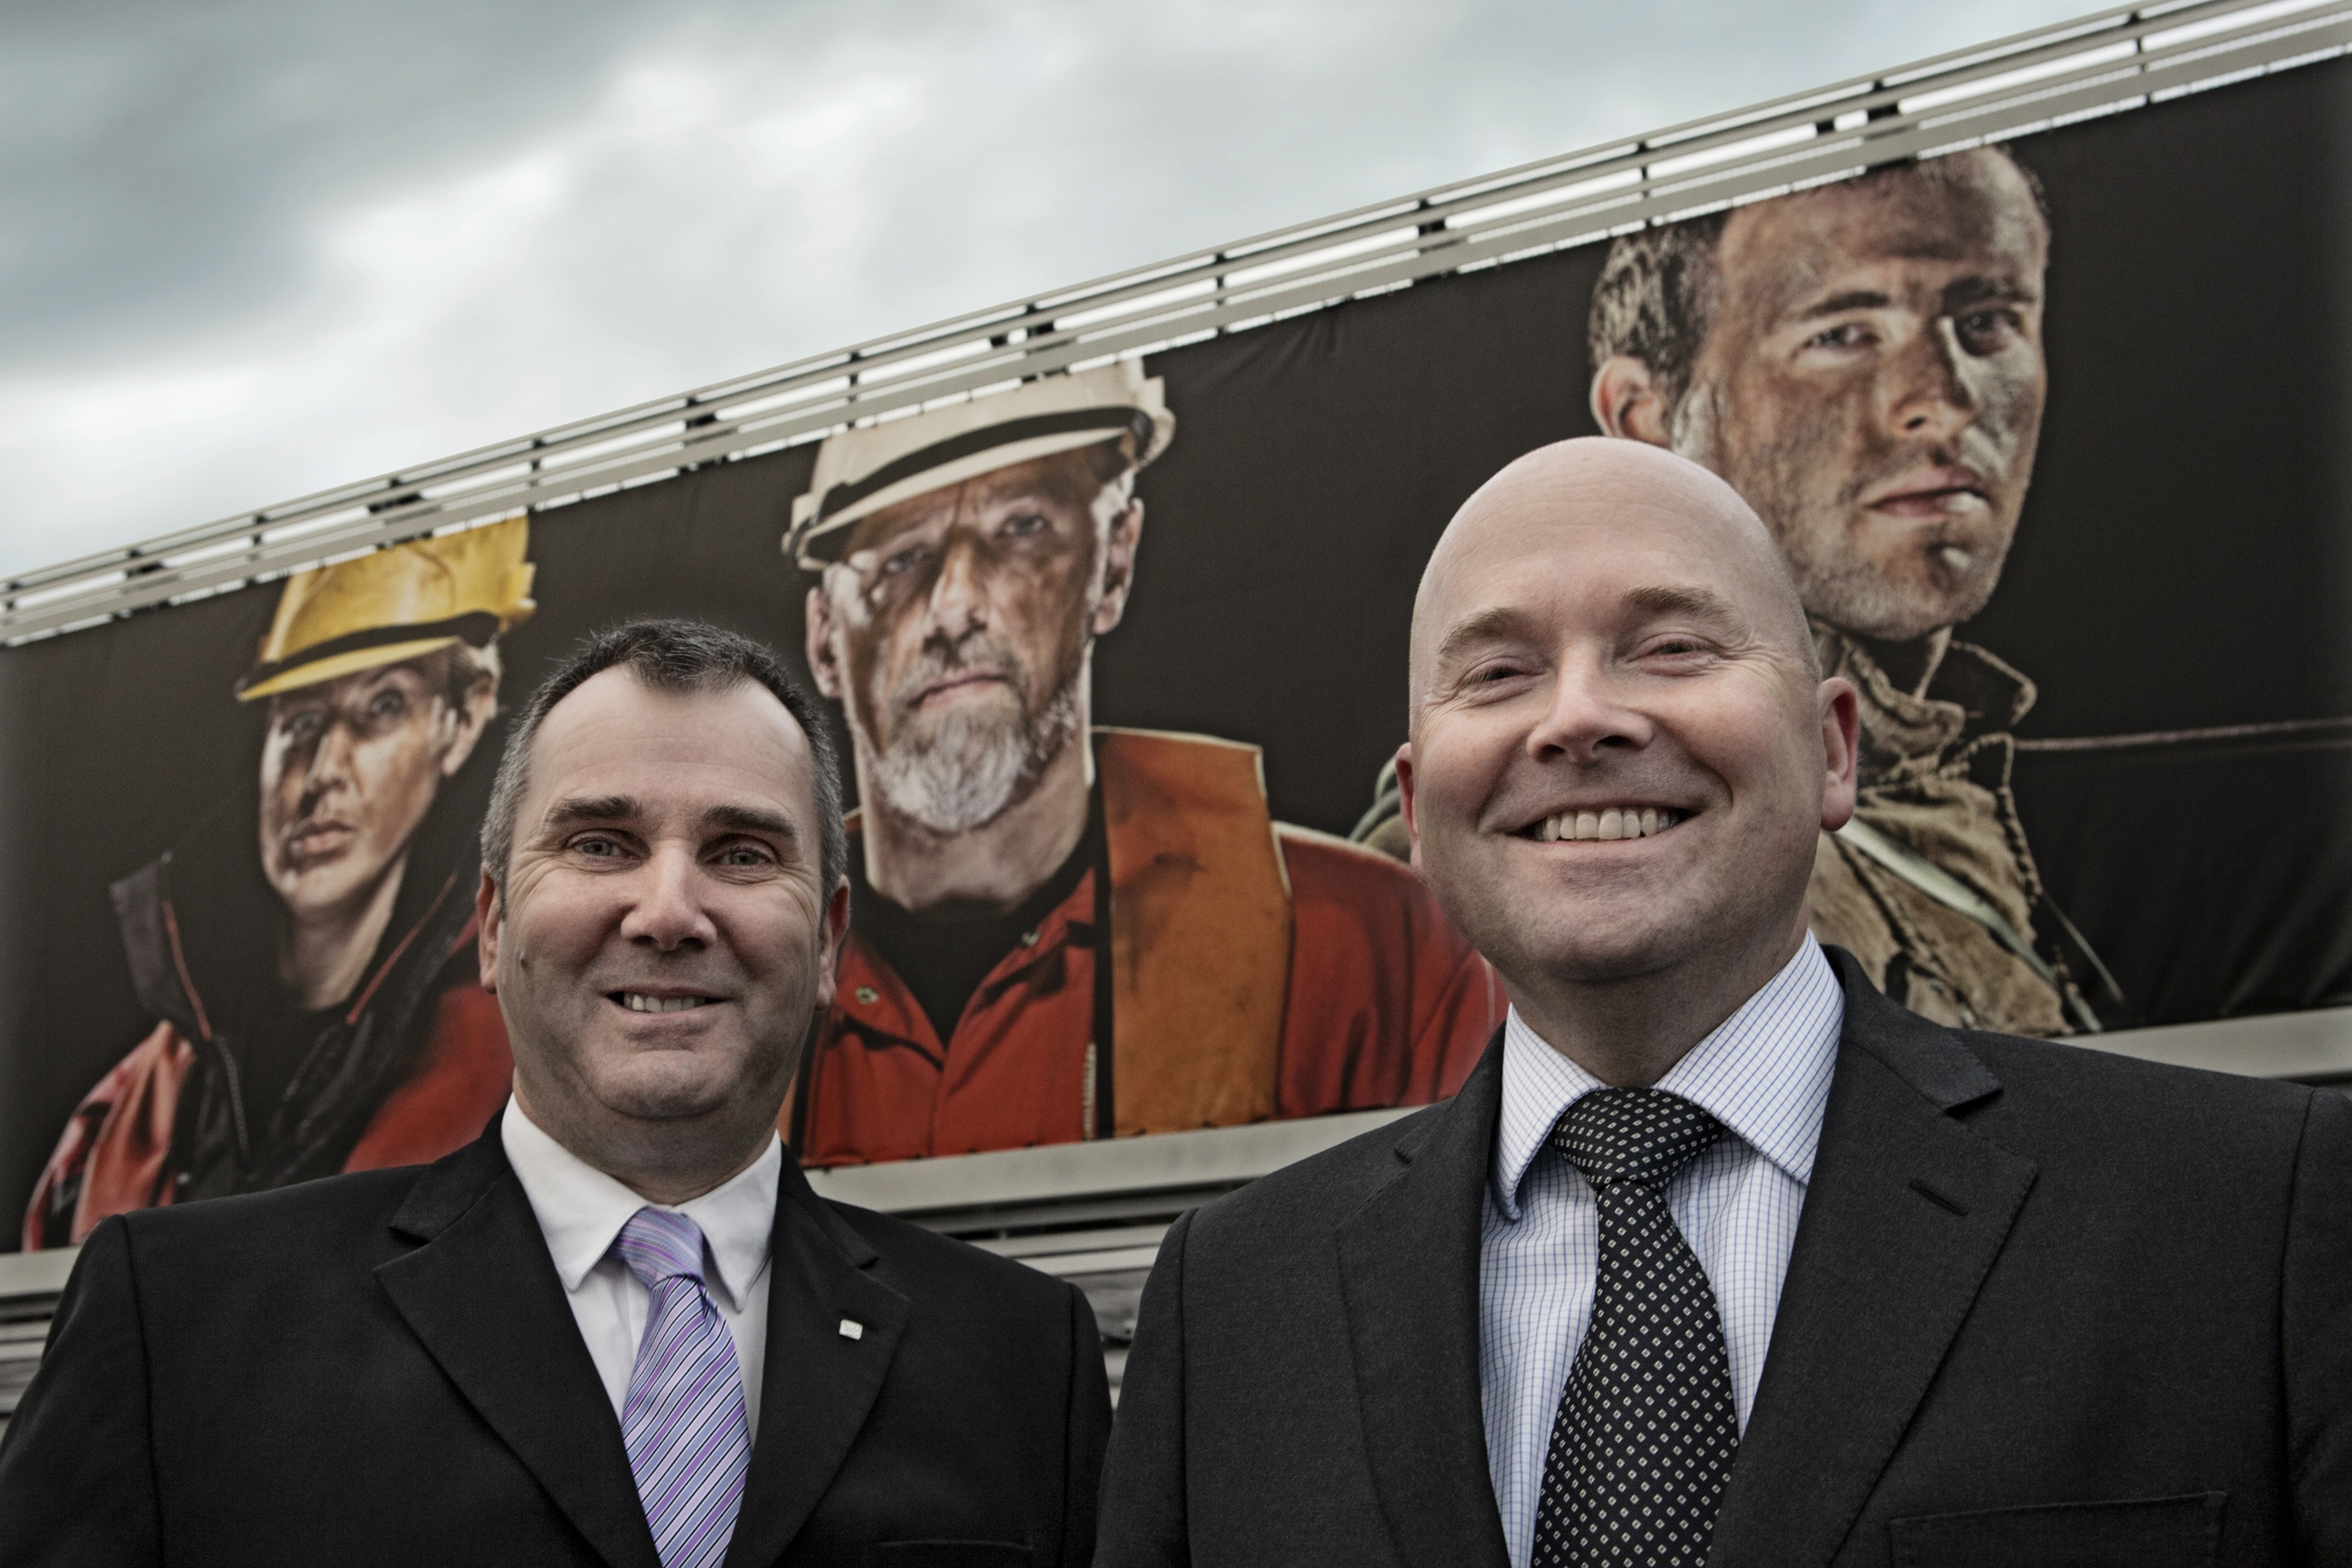 From left: Falck Nutec UK Managing Director, Graham Gall, pictured alongside Aberdeen Airport's Commercial Director, Don Jacobs, with a section of the record-breaking banner ad in the background